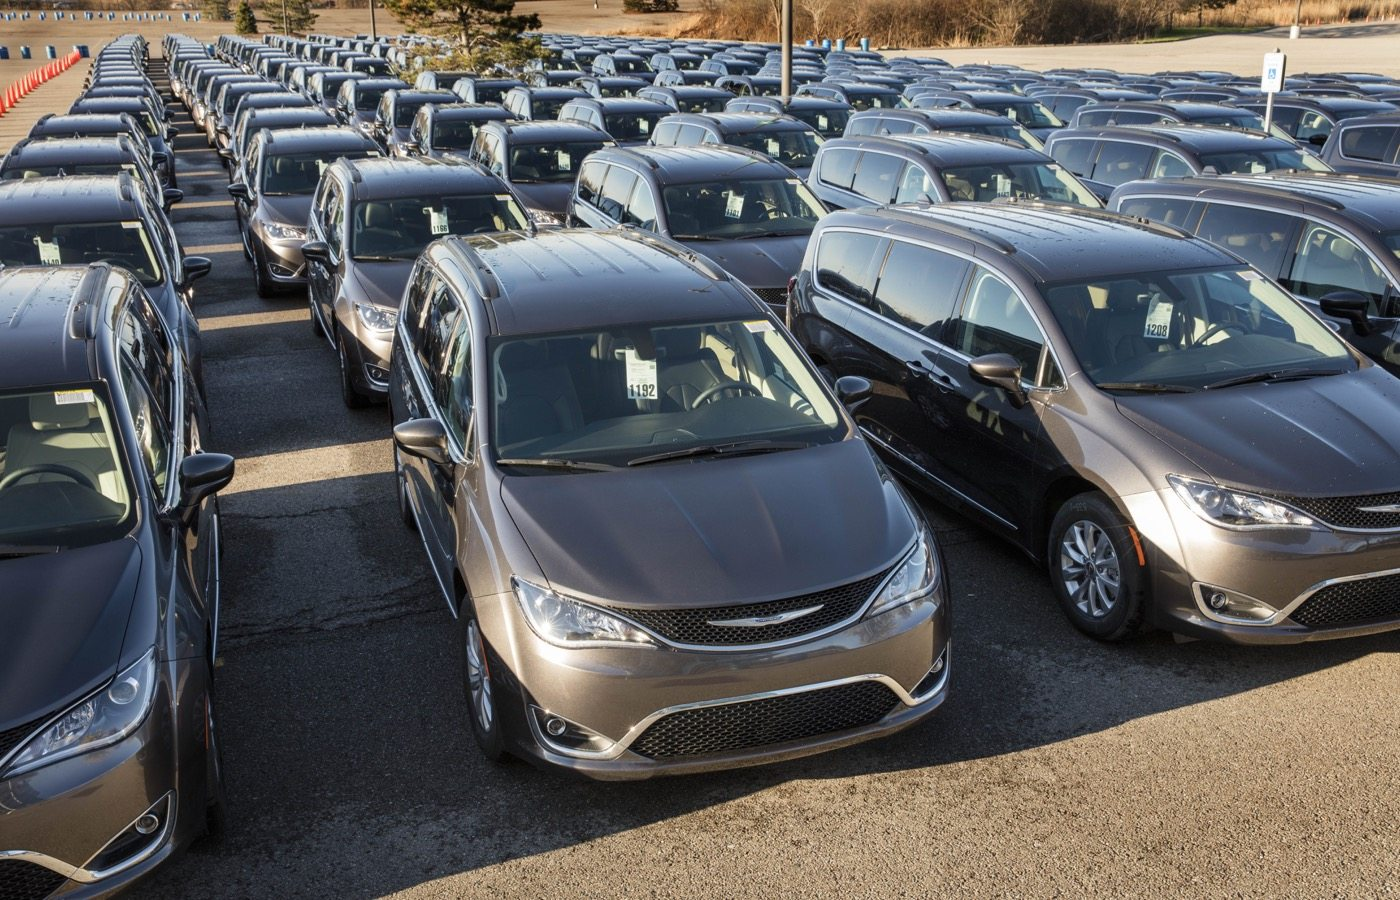 2017 Chrysler Pacifica Dealer Drive Away - Image: FCA